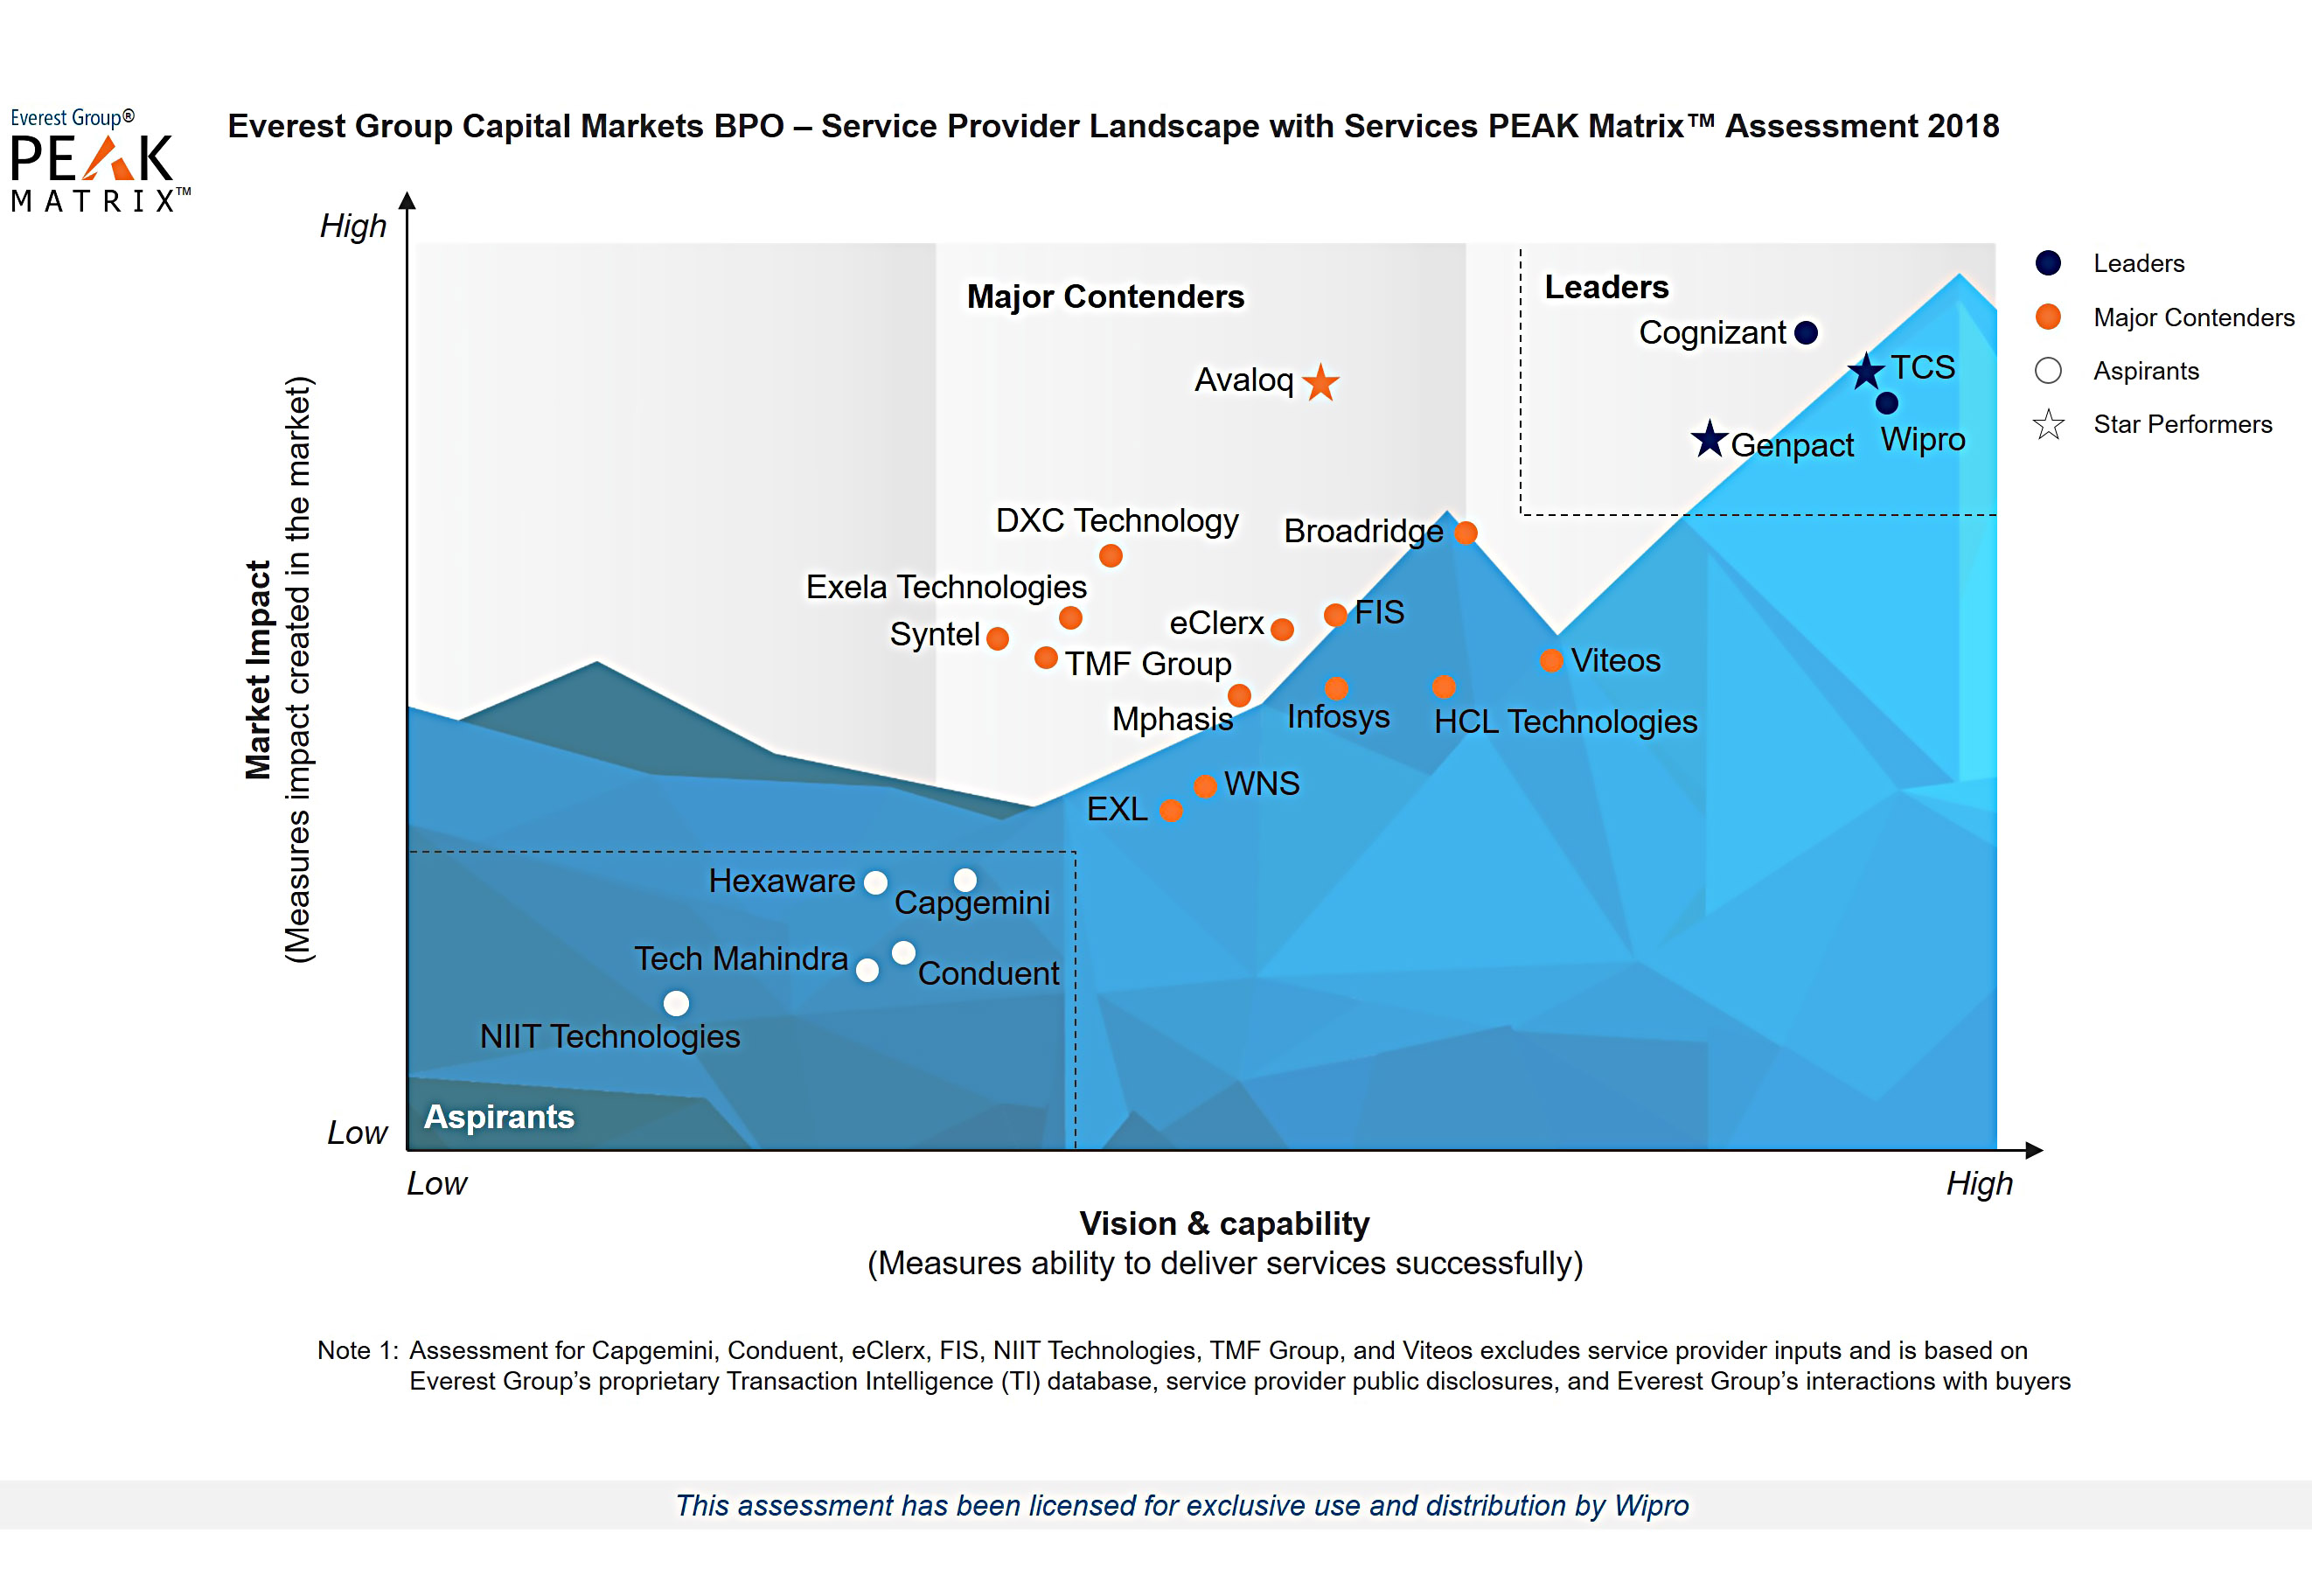 Wipro is a Leader in the Everest Group's Capital Markets BPO Services PEAK Matrix™ Assessment 2018